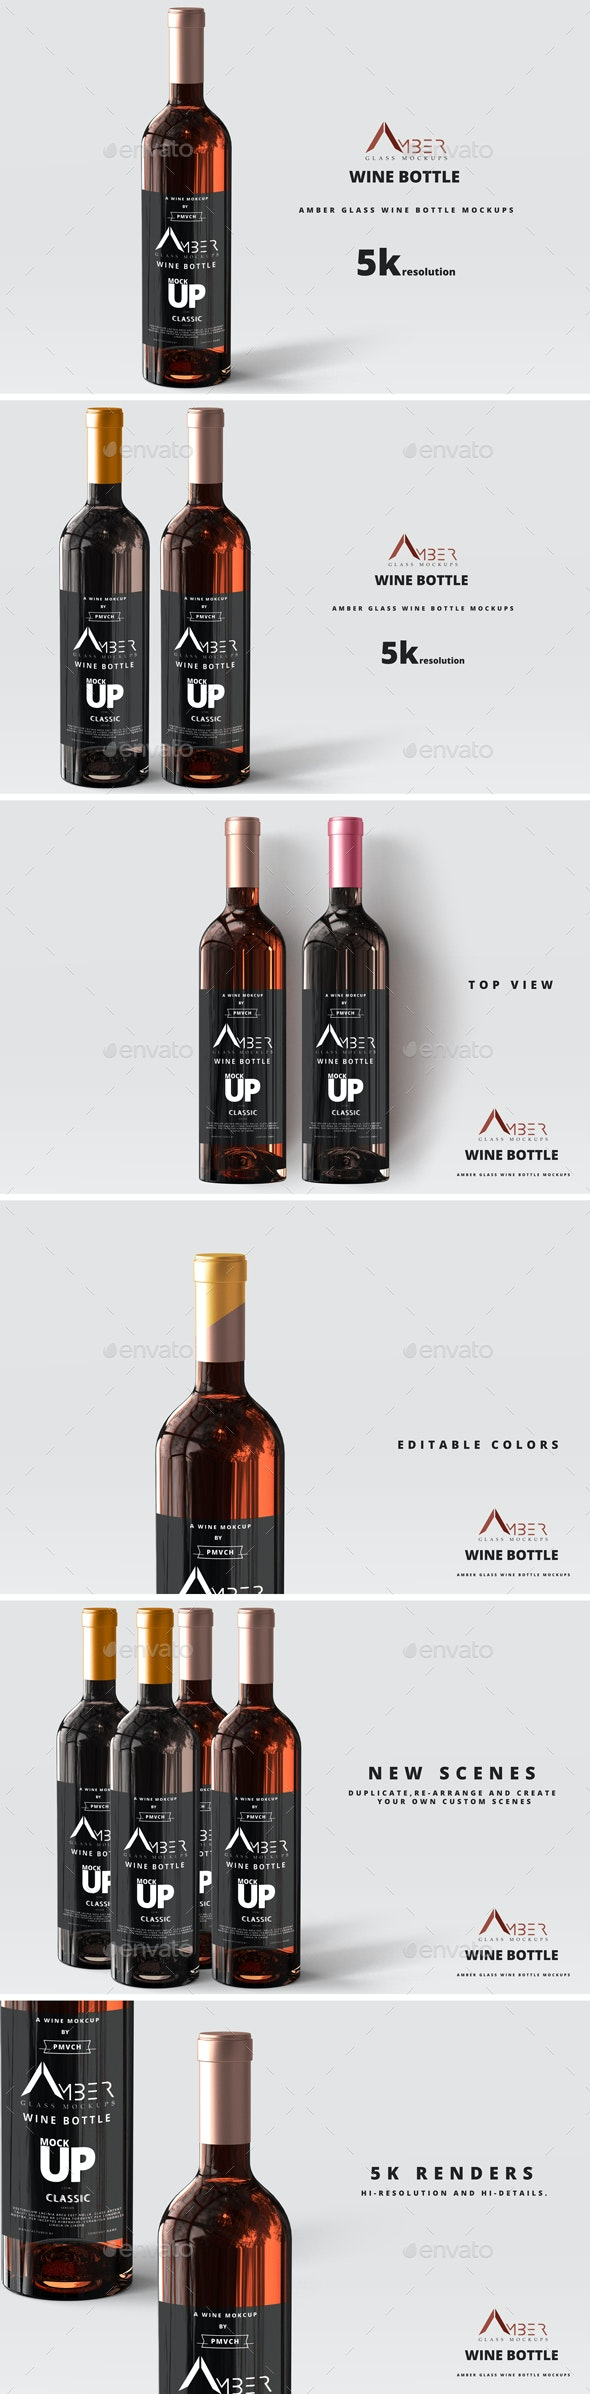 Amber Glass Wine Bottle Mockup - Food and Drink Packaging